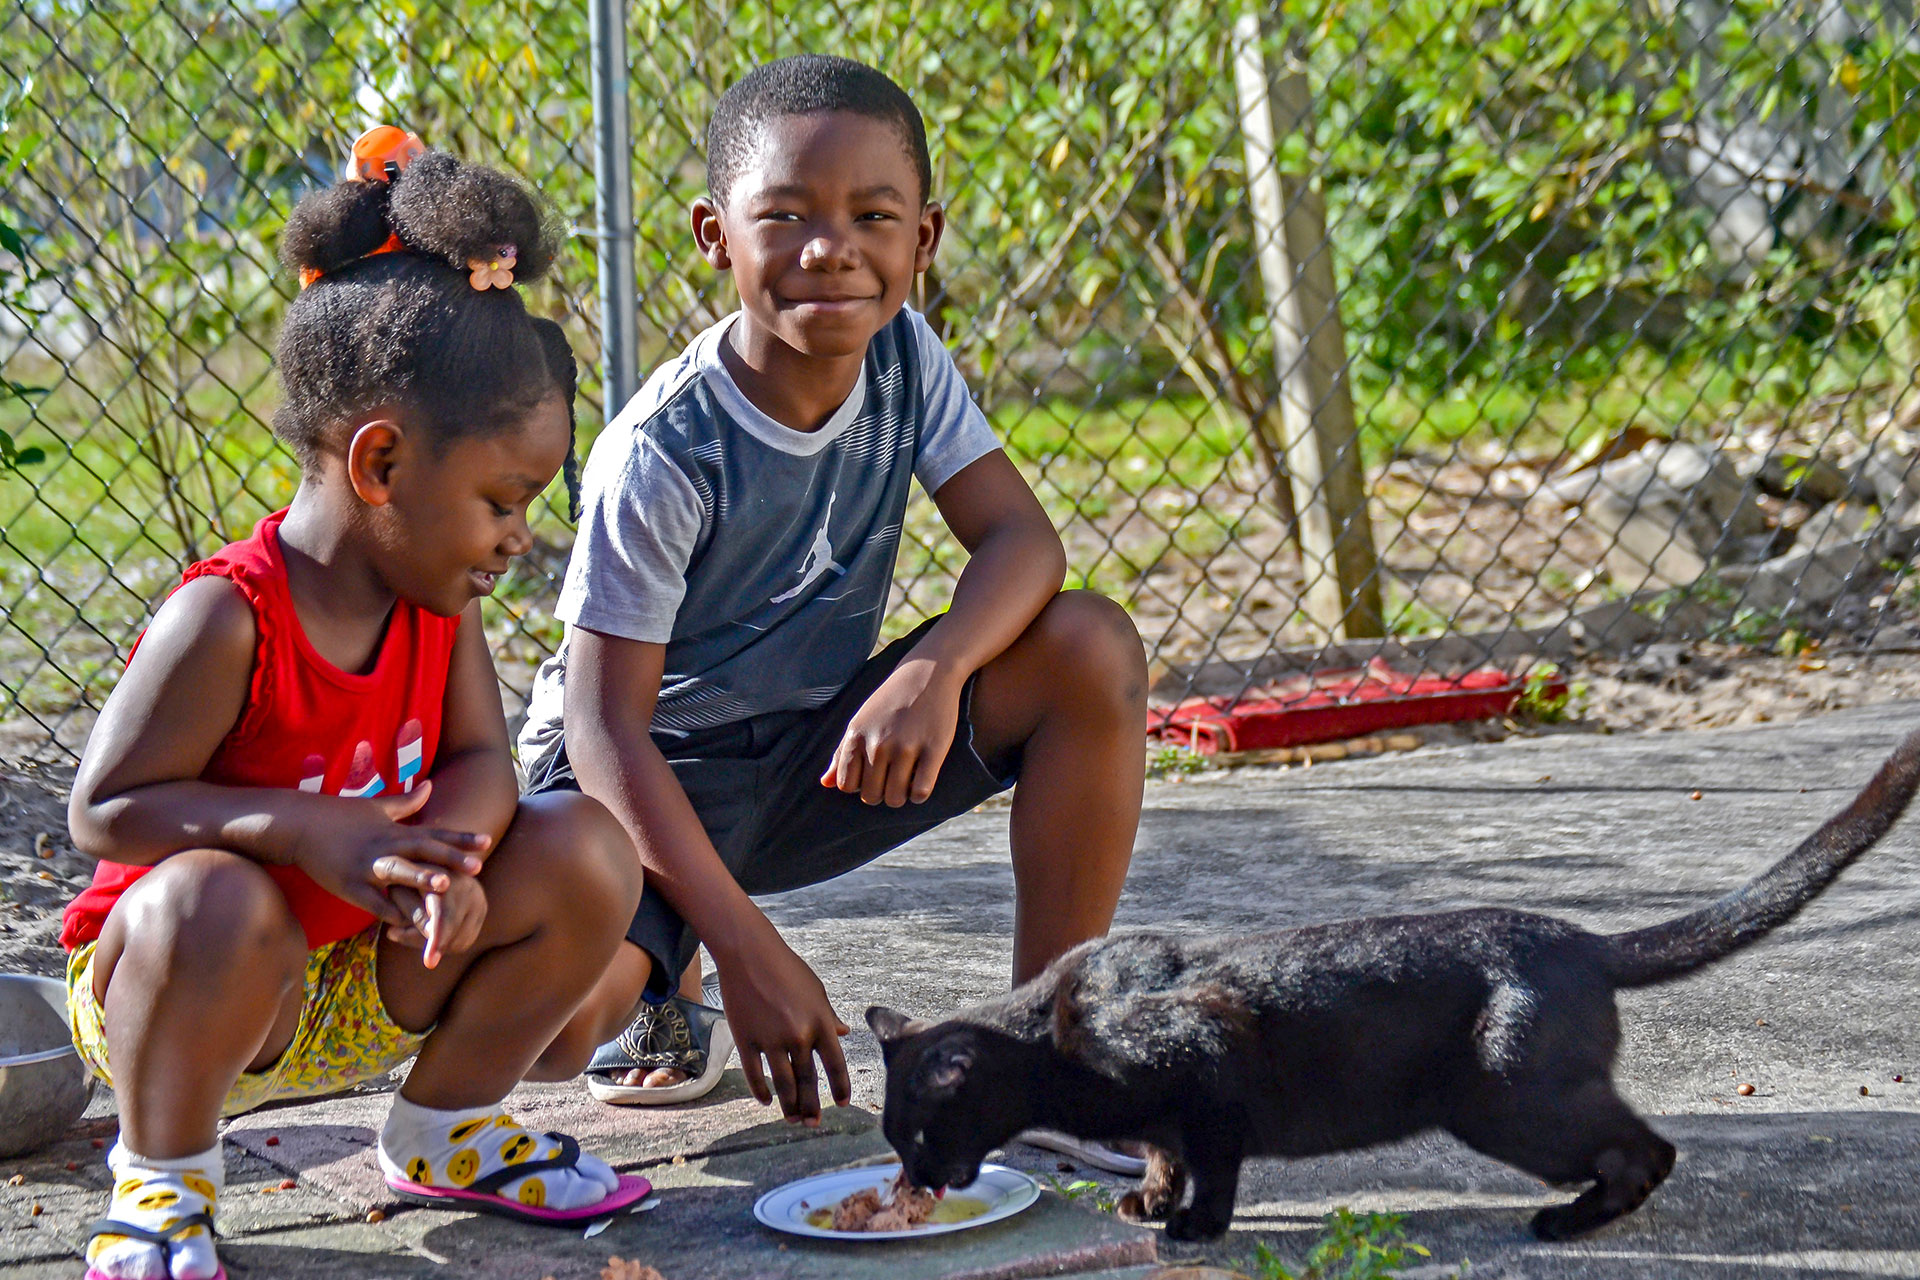 Neveah Edmond, 4, and Edson Edmond, 8, learn humane treatment of animals